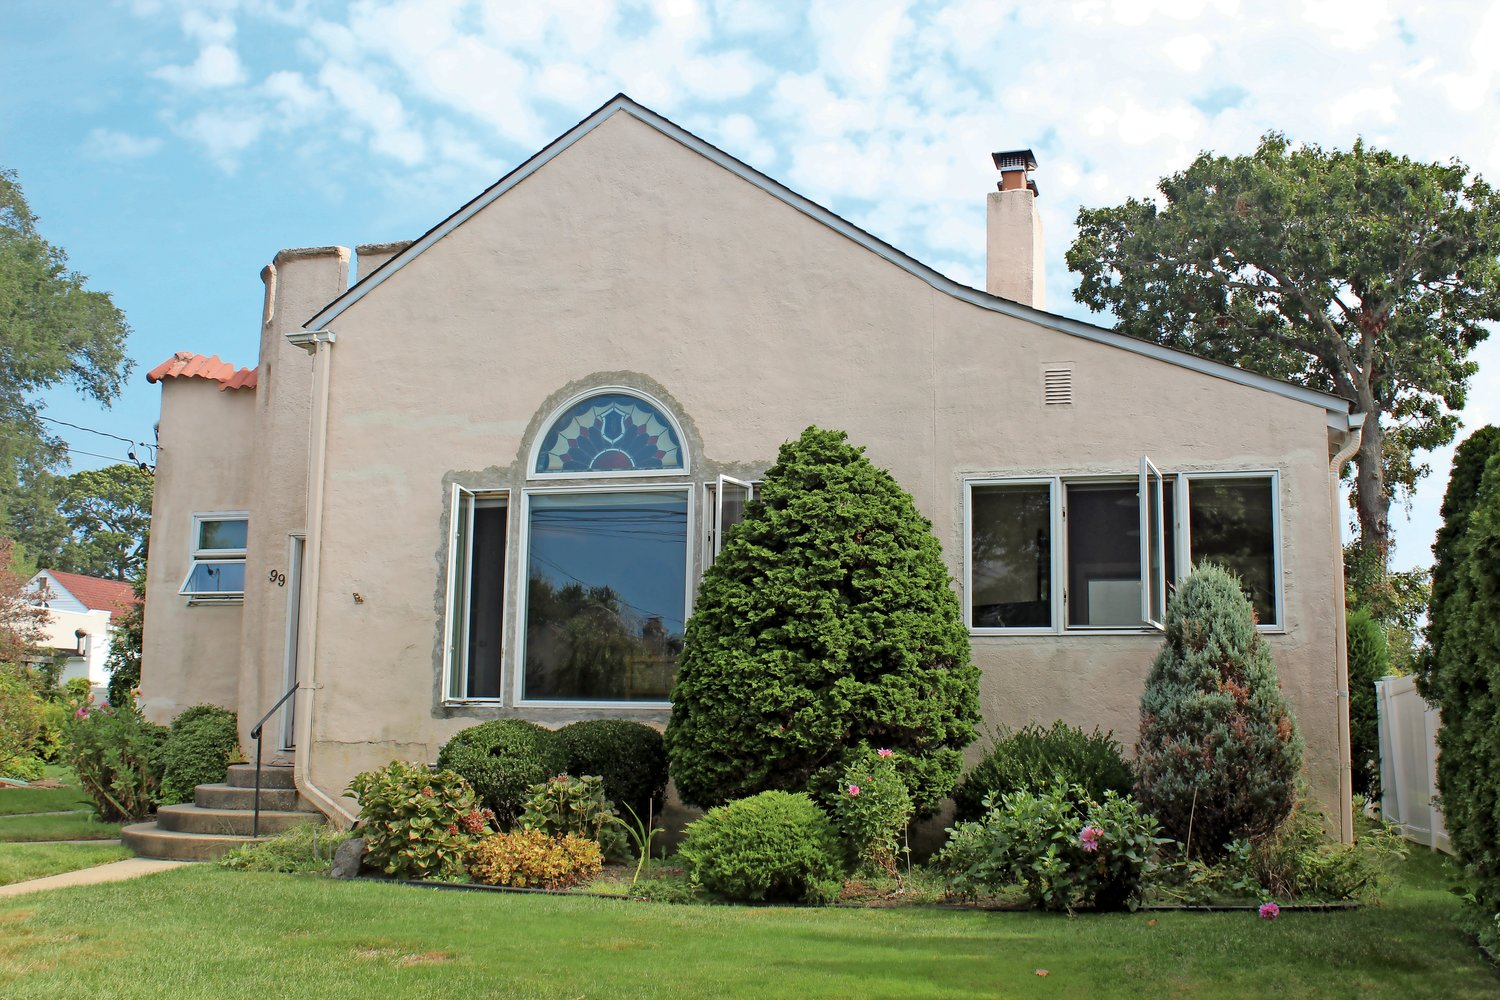 Robert Fliegel's home, at 99 Fox Blvd., is under consideration for landmark status by the Town of Hempstead.